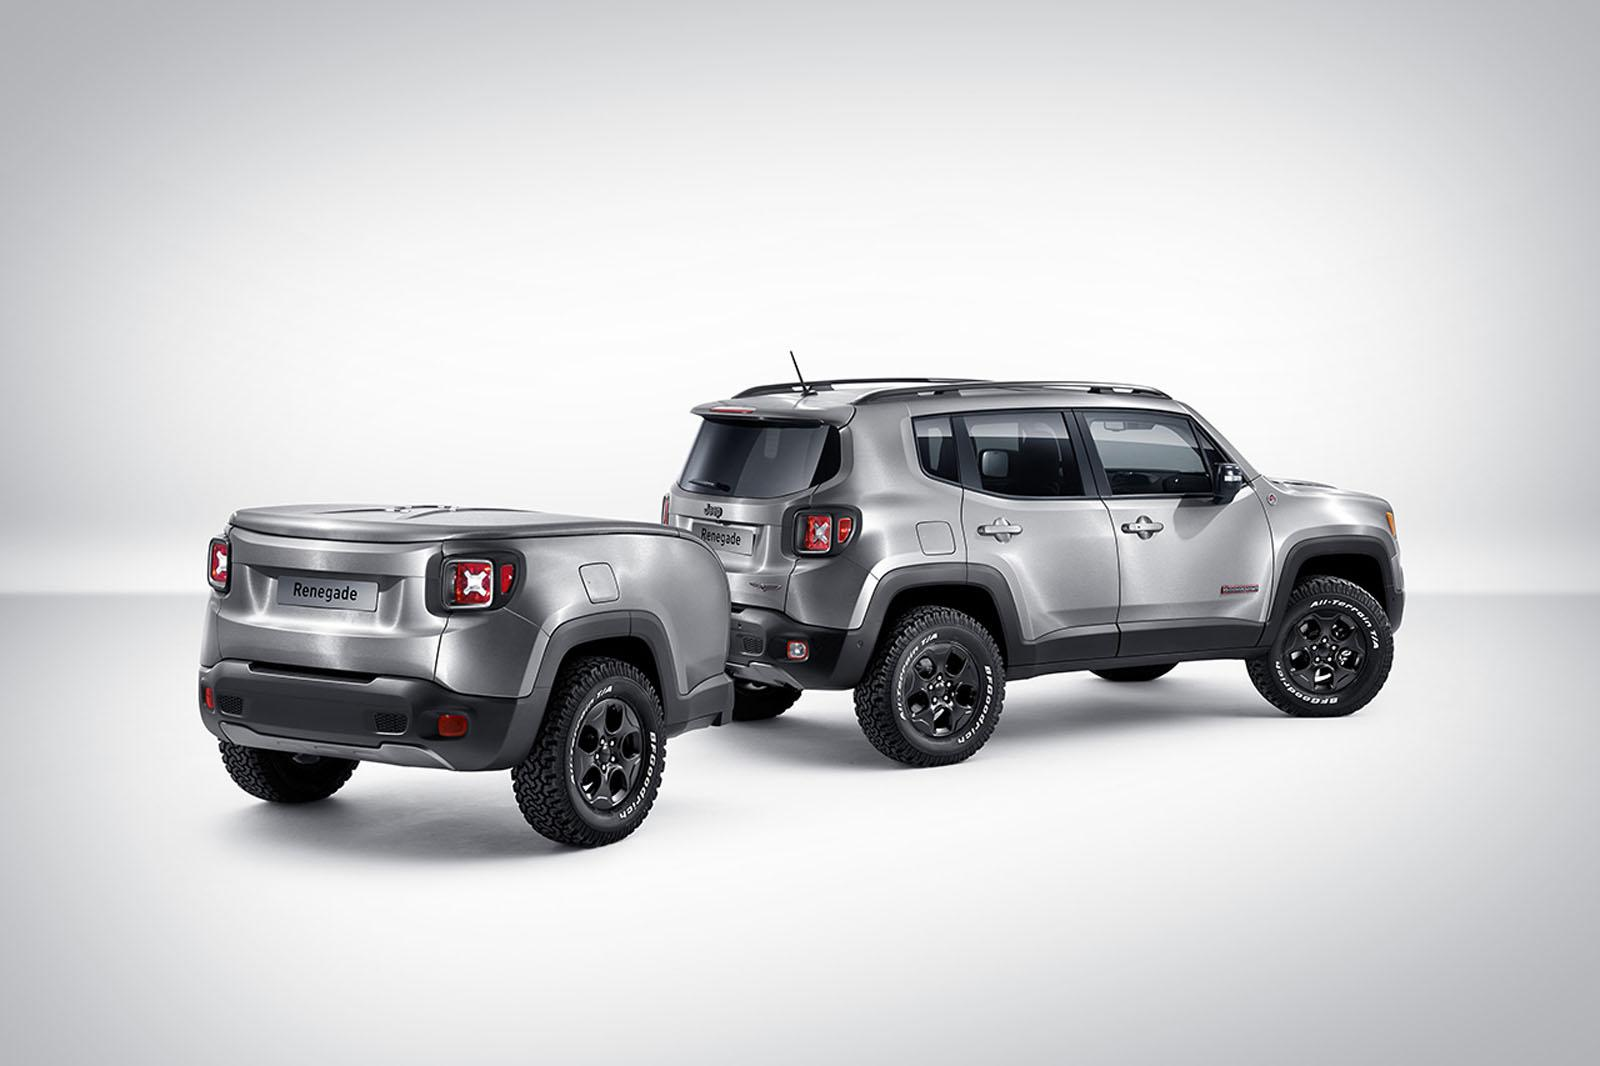 Jeep Renegade Gets a Pimped Out Trailer and Brushed Steel